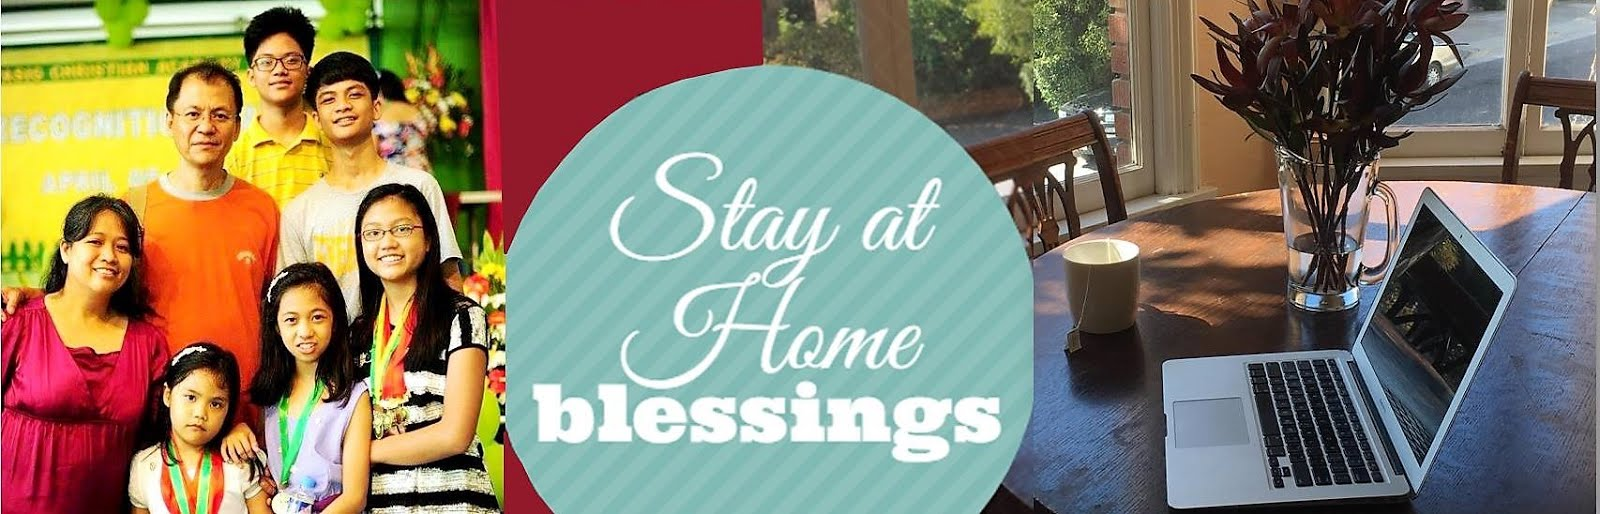 Stay at Home Blessings